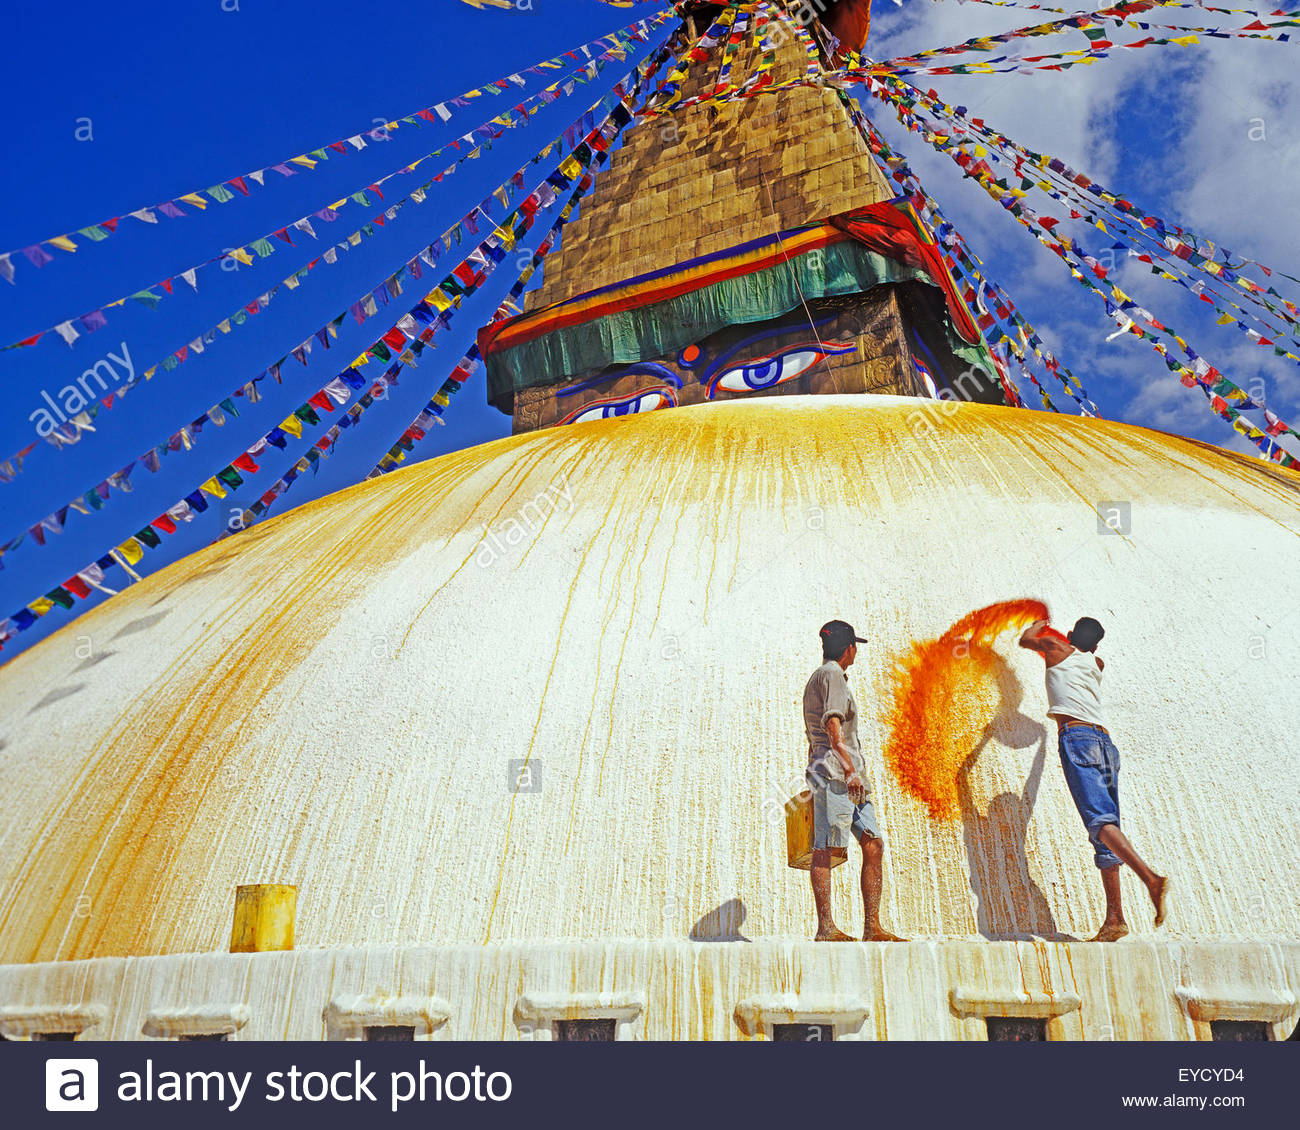 Young man throwing saffron water on Boudhanath Stupa, Boudhanath, Katmandu, Nepal, Asia - Stock Image